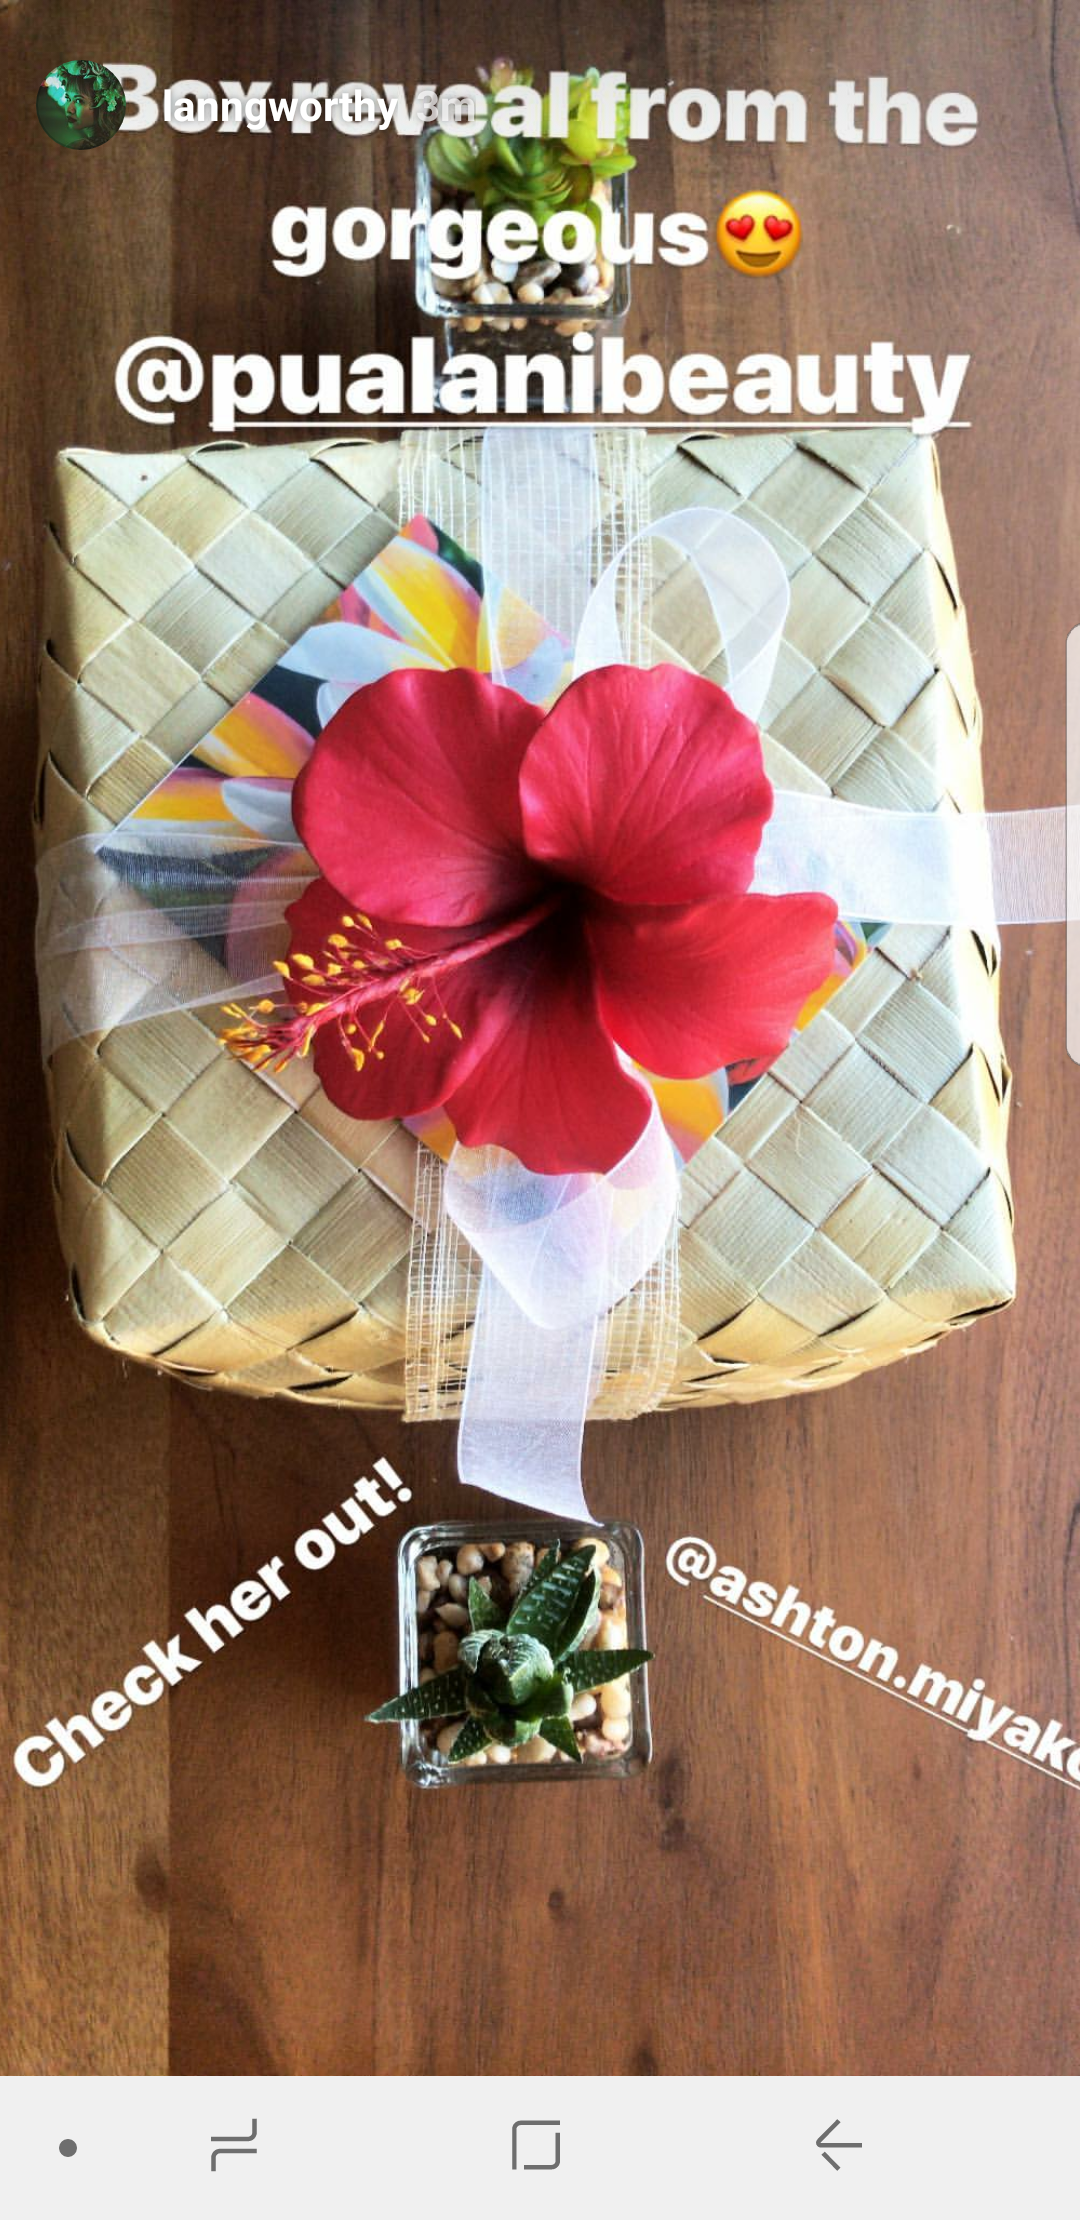 Mahalo @langworthy for the shout out, so excited to make that box for you!